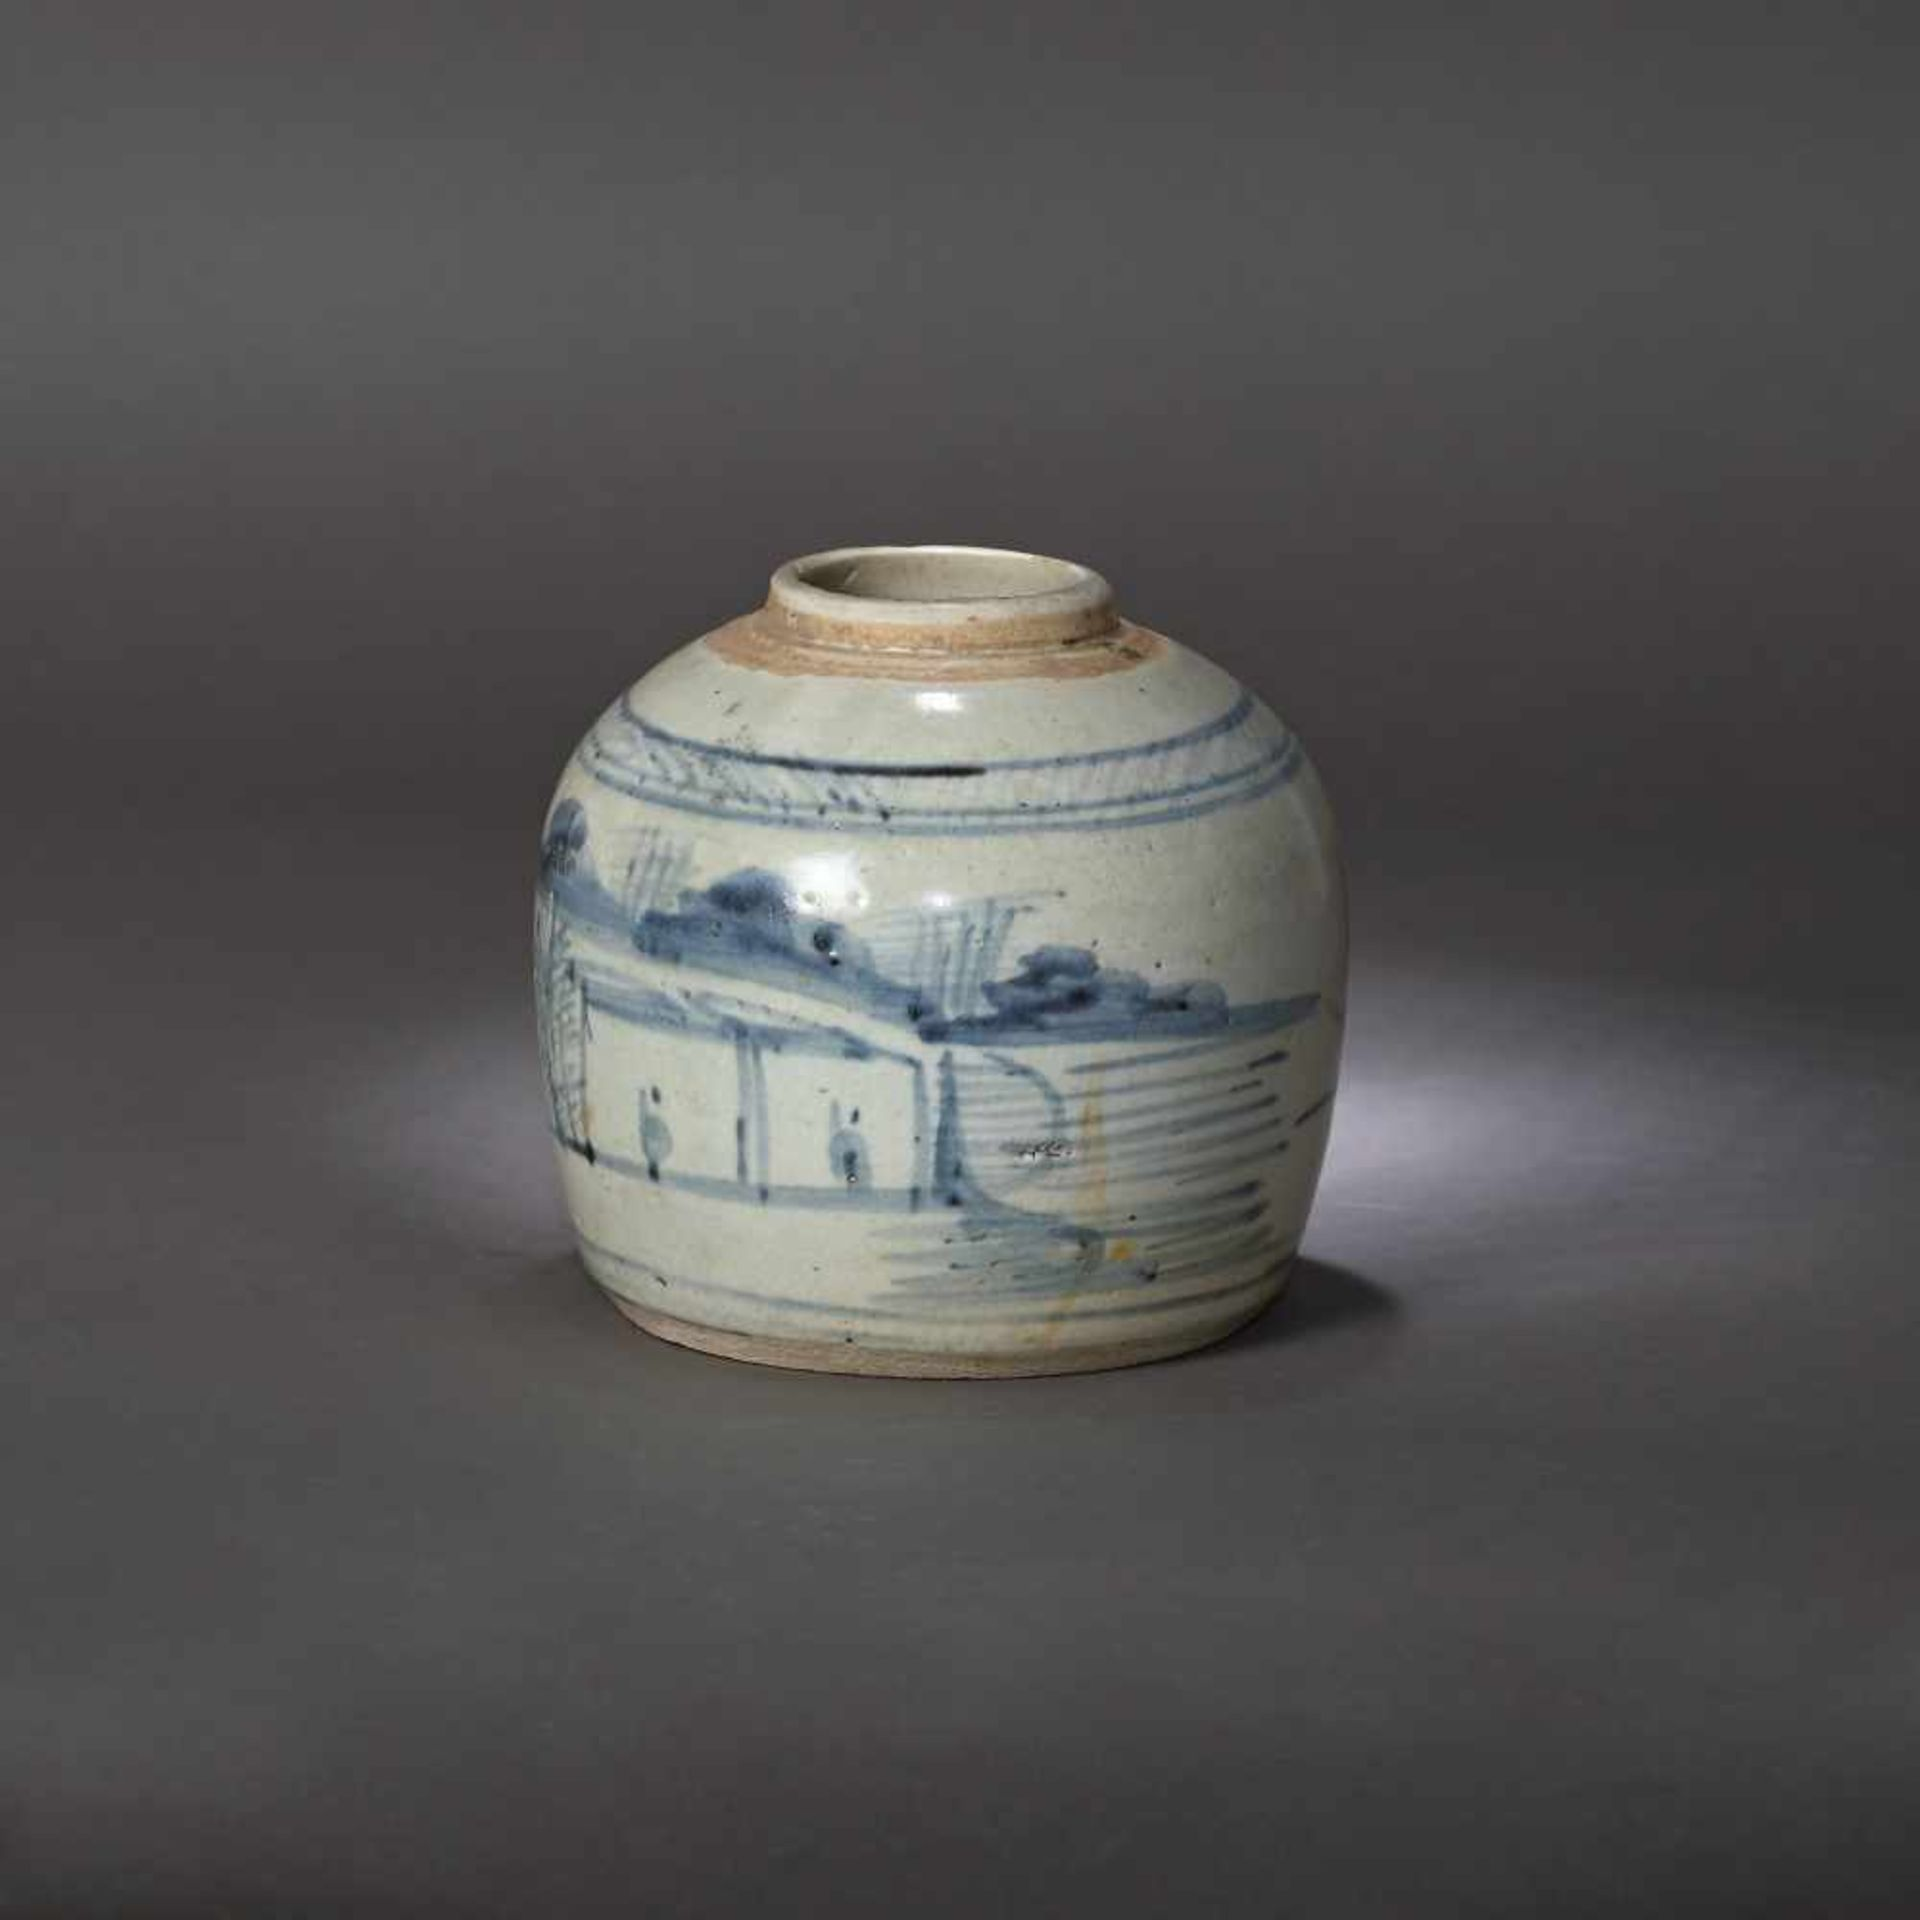 Ginger vessel, decorated with traditional landscapes, possibly 17th century - Bild 3 aus 5